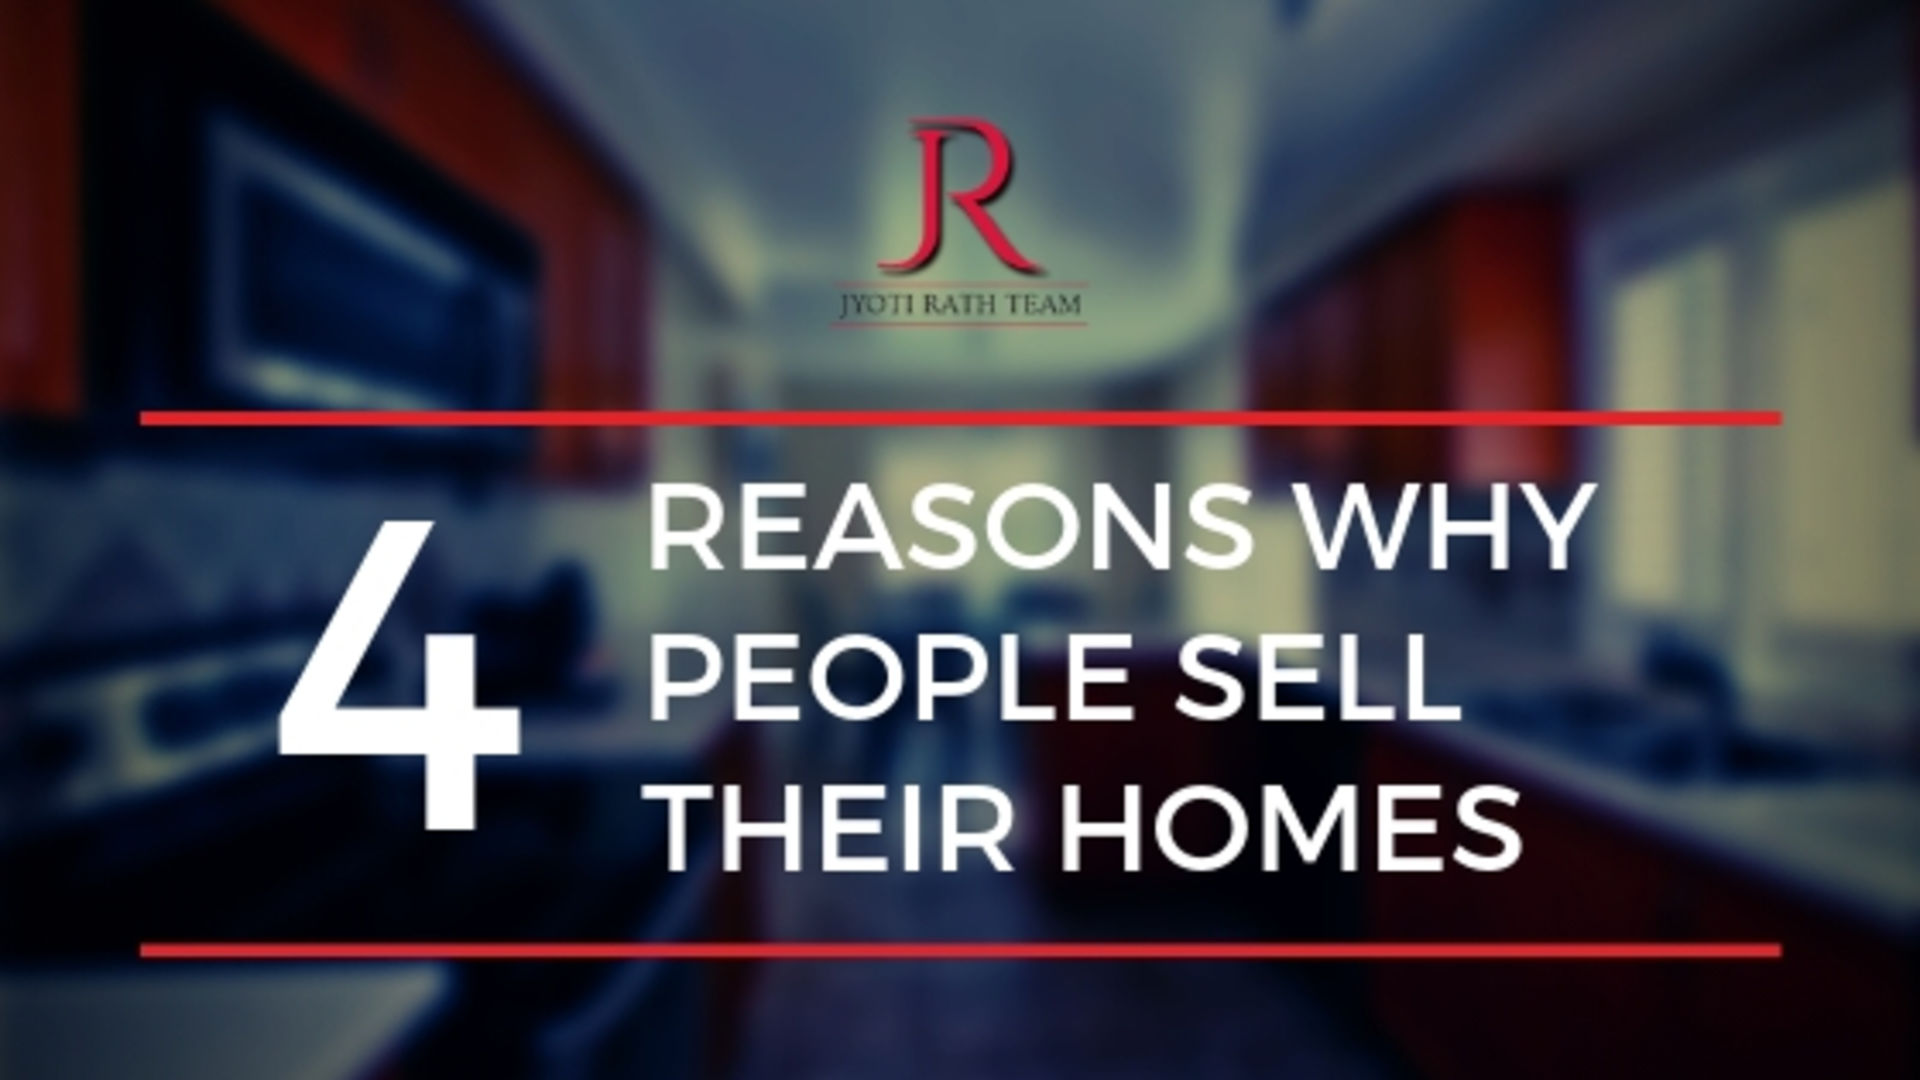 Reasons Why People Sell Their Homes